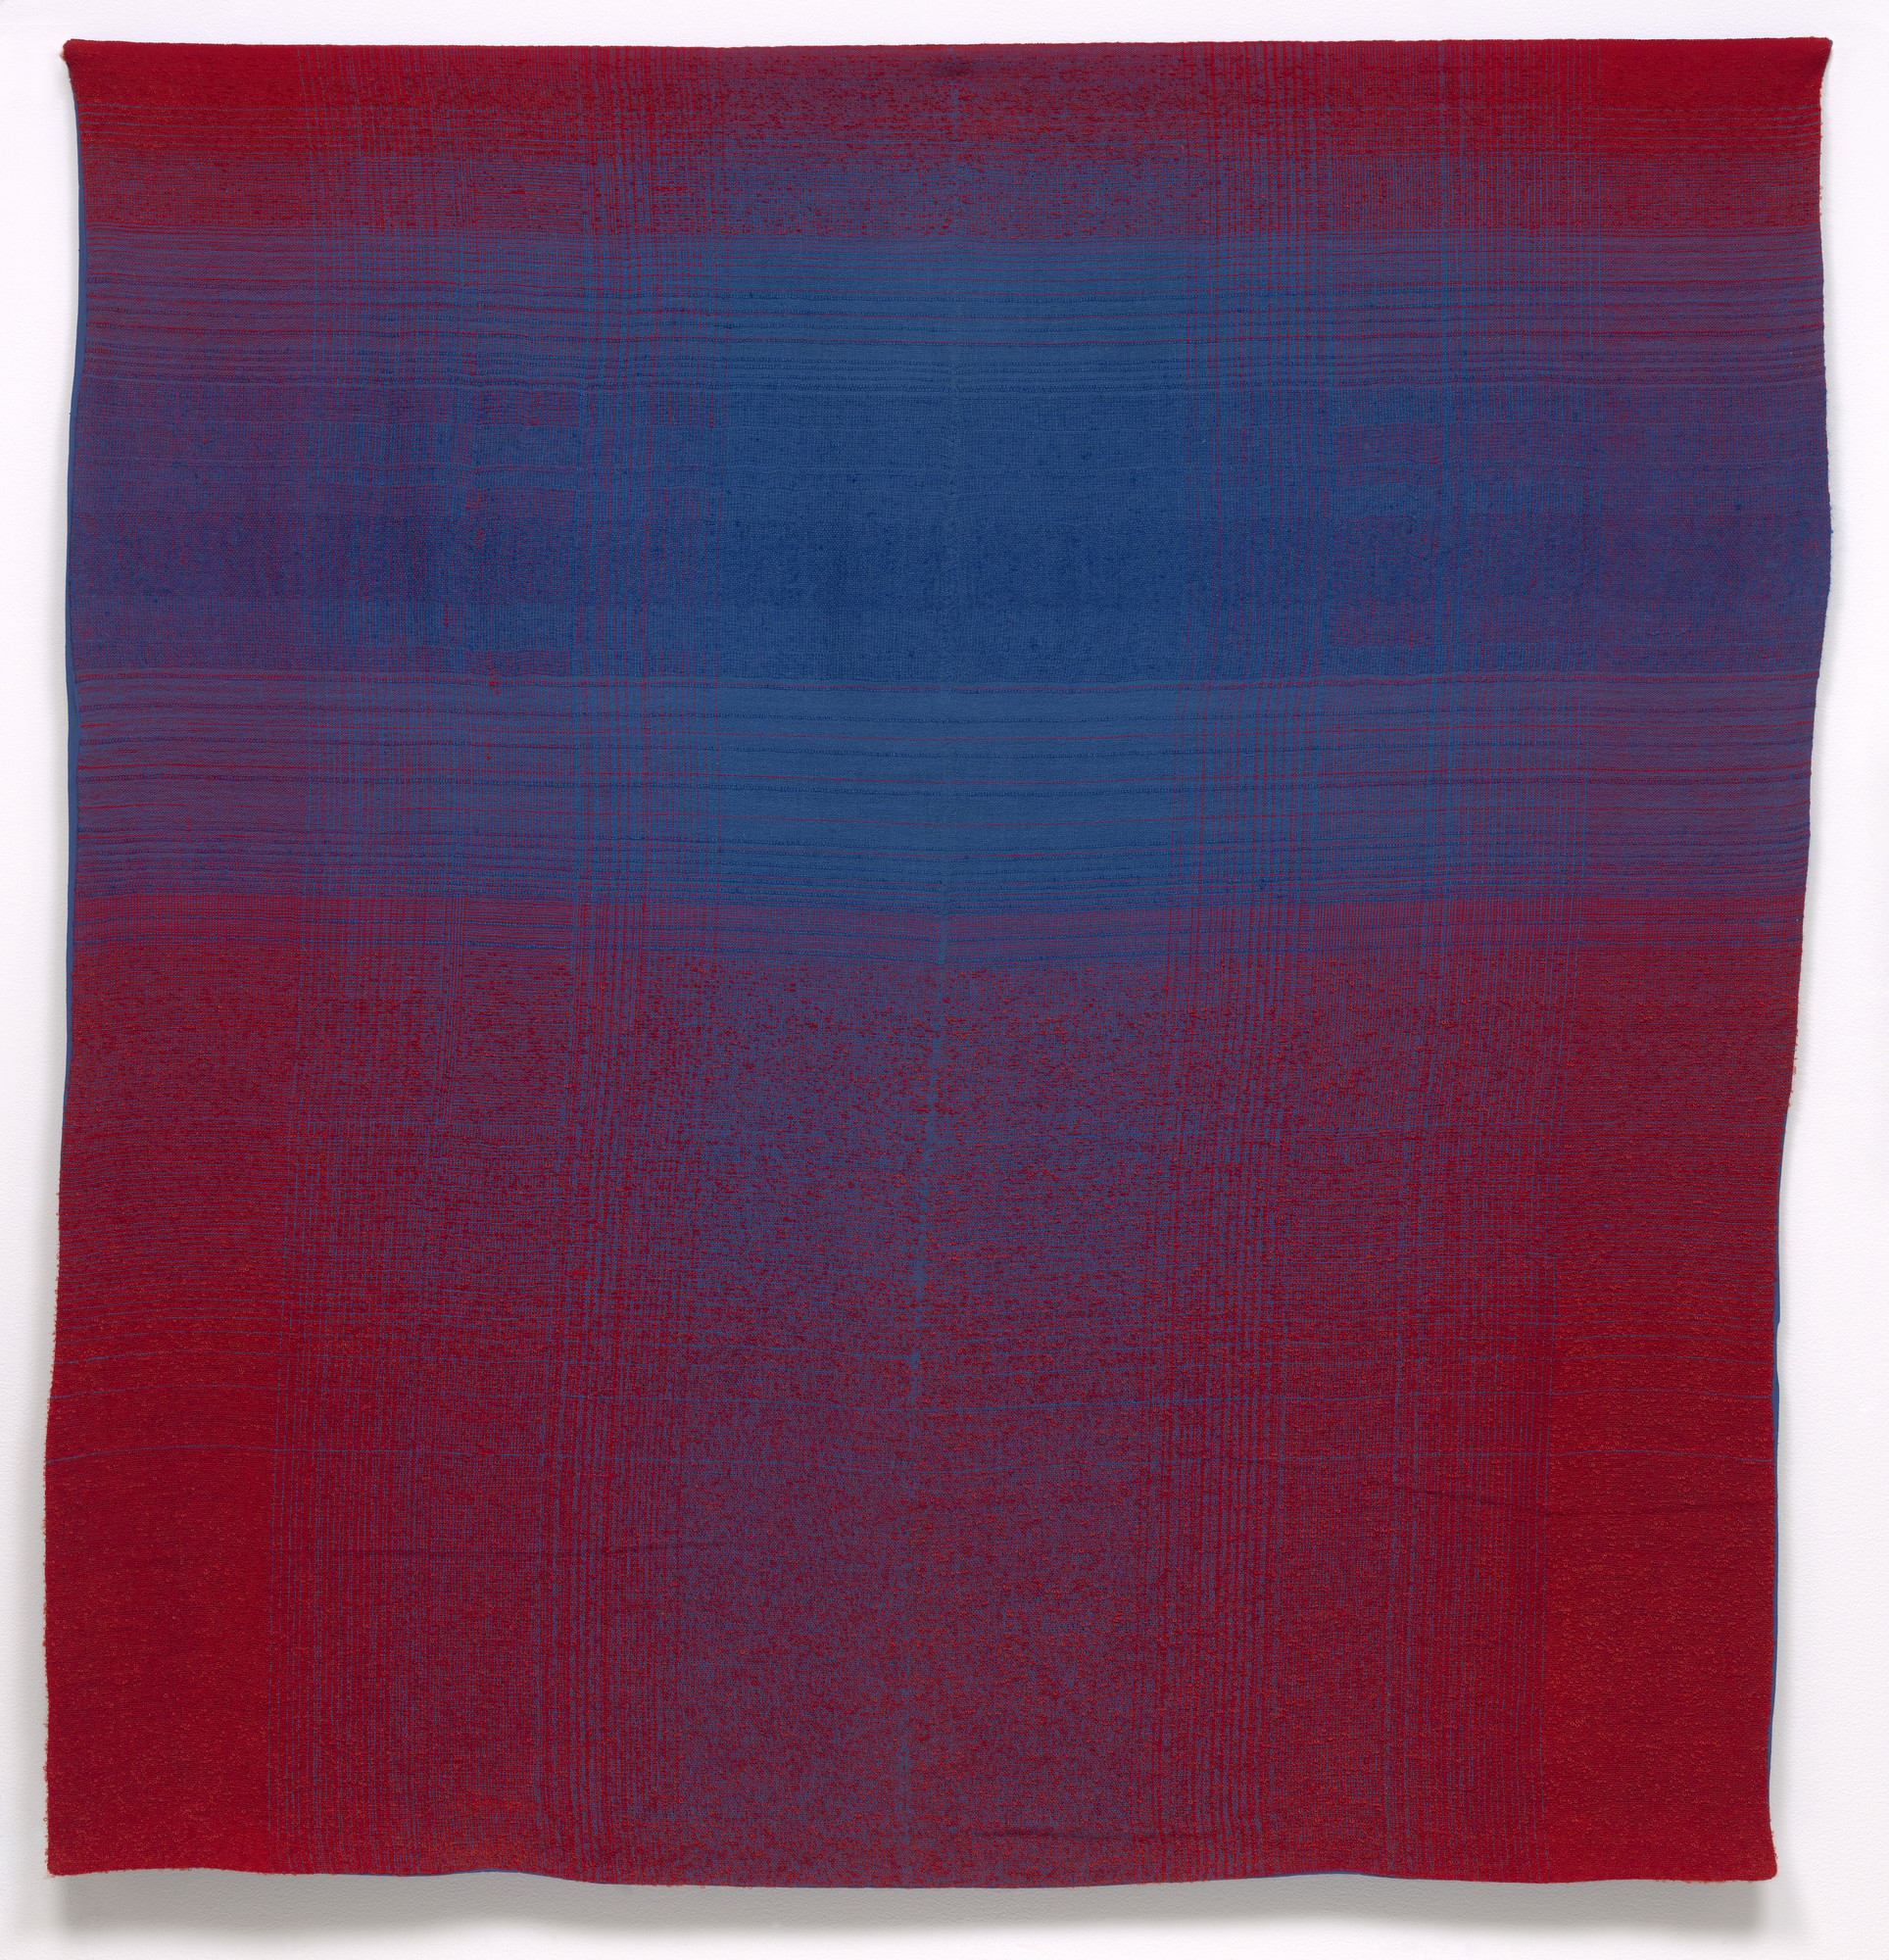 Dolores Dembus Bittleman. Wall Hanging: Entrance II. 1964